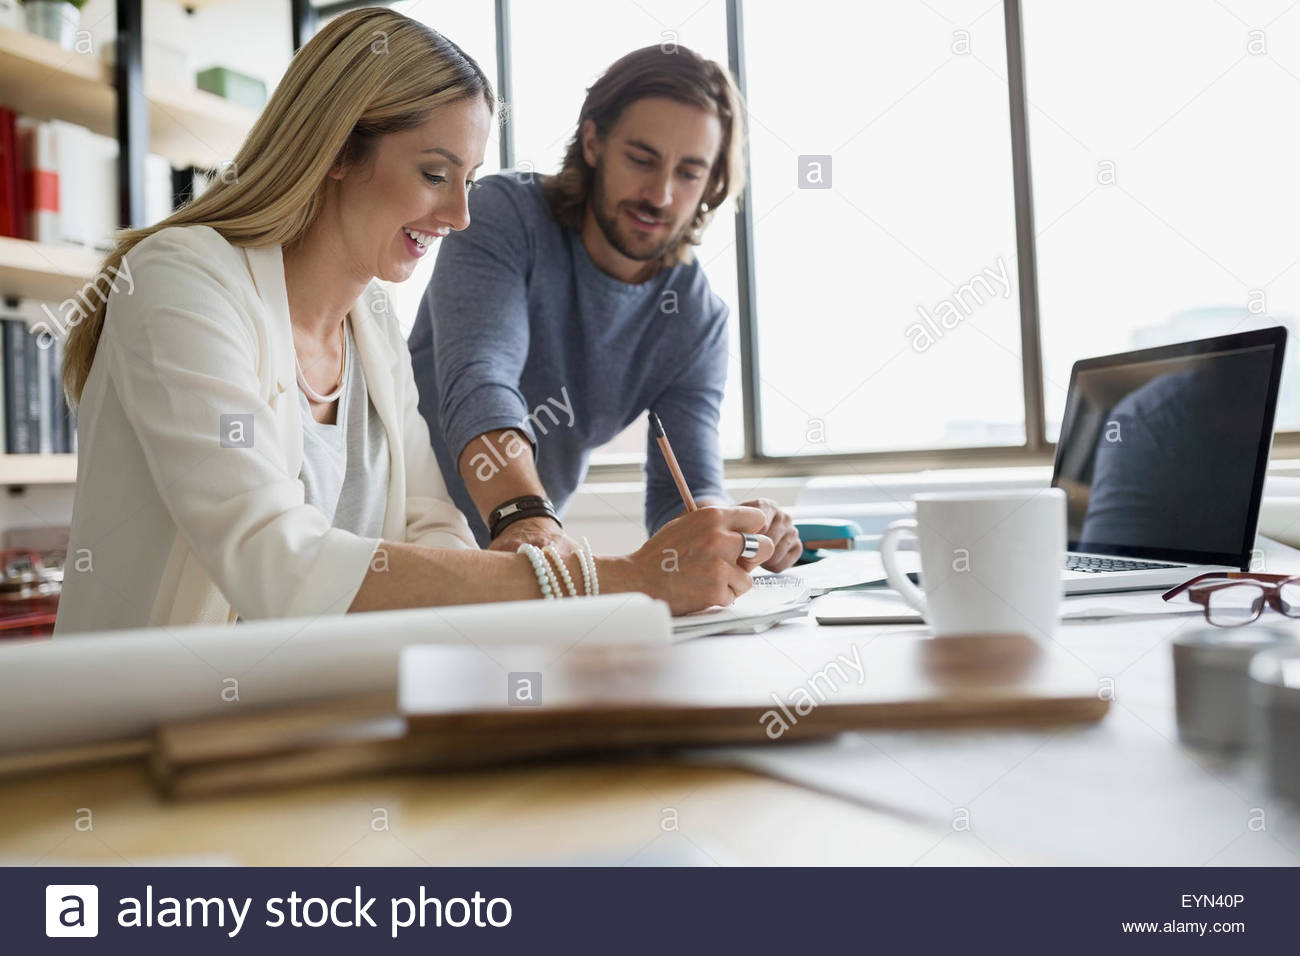 Architects drafting blueprints at table - Stock Image